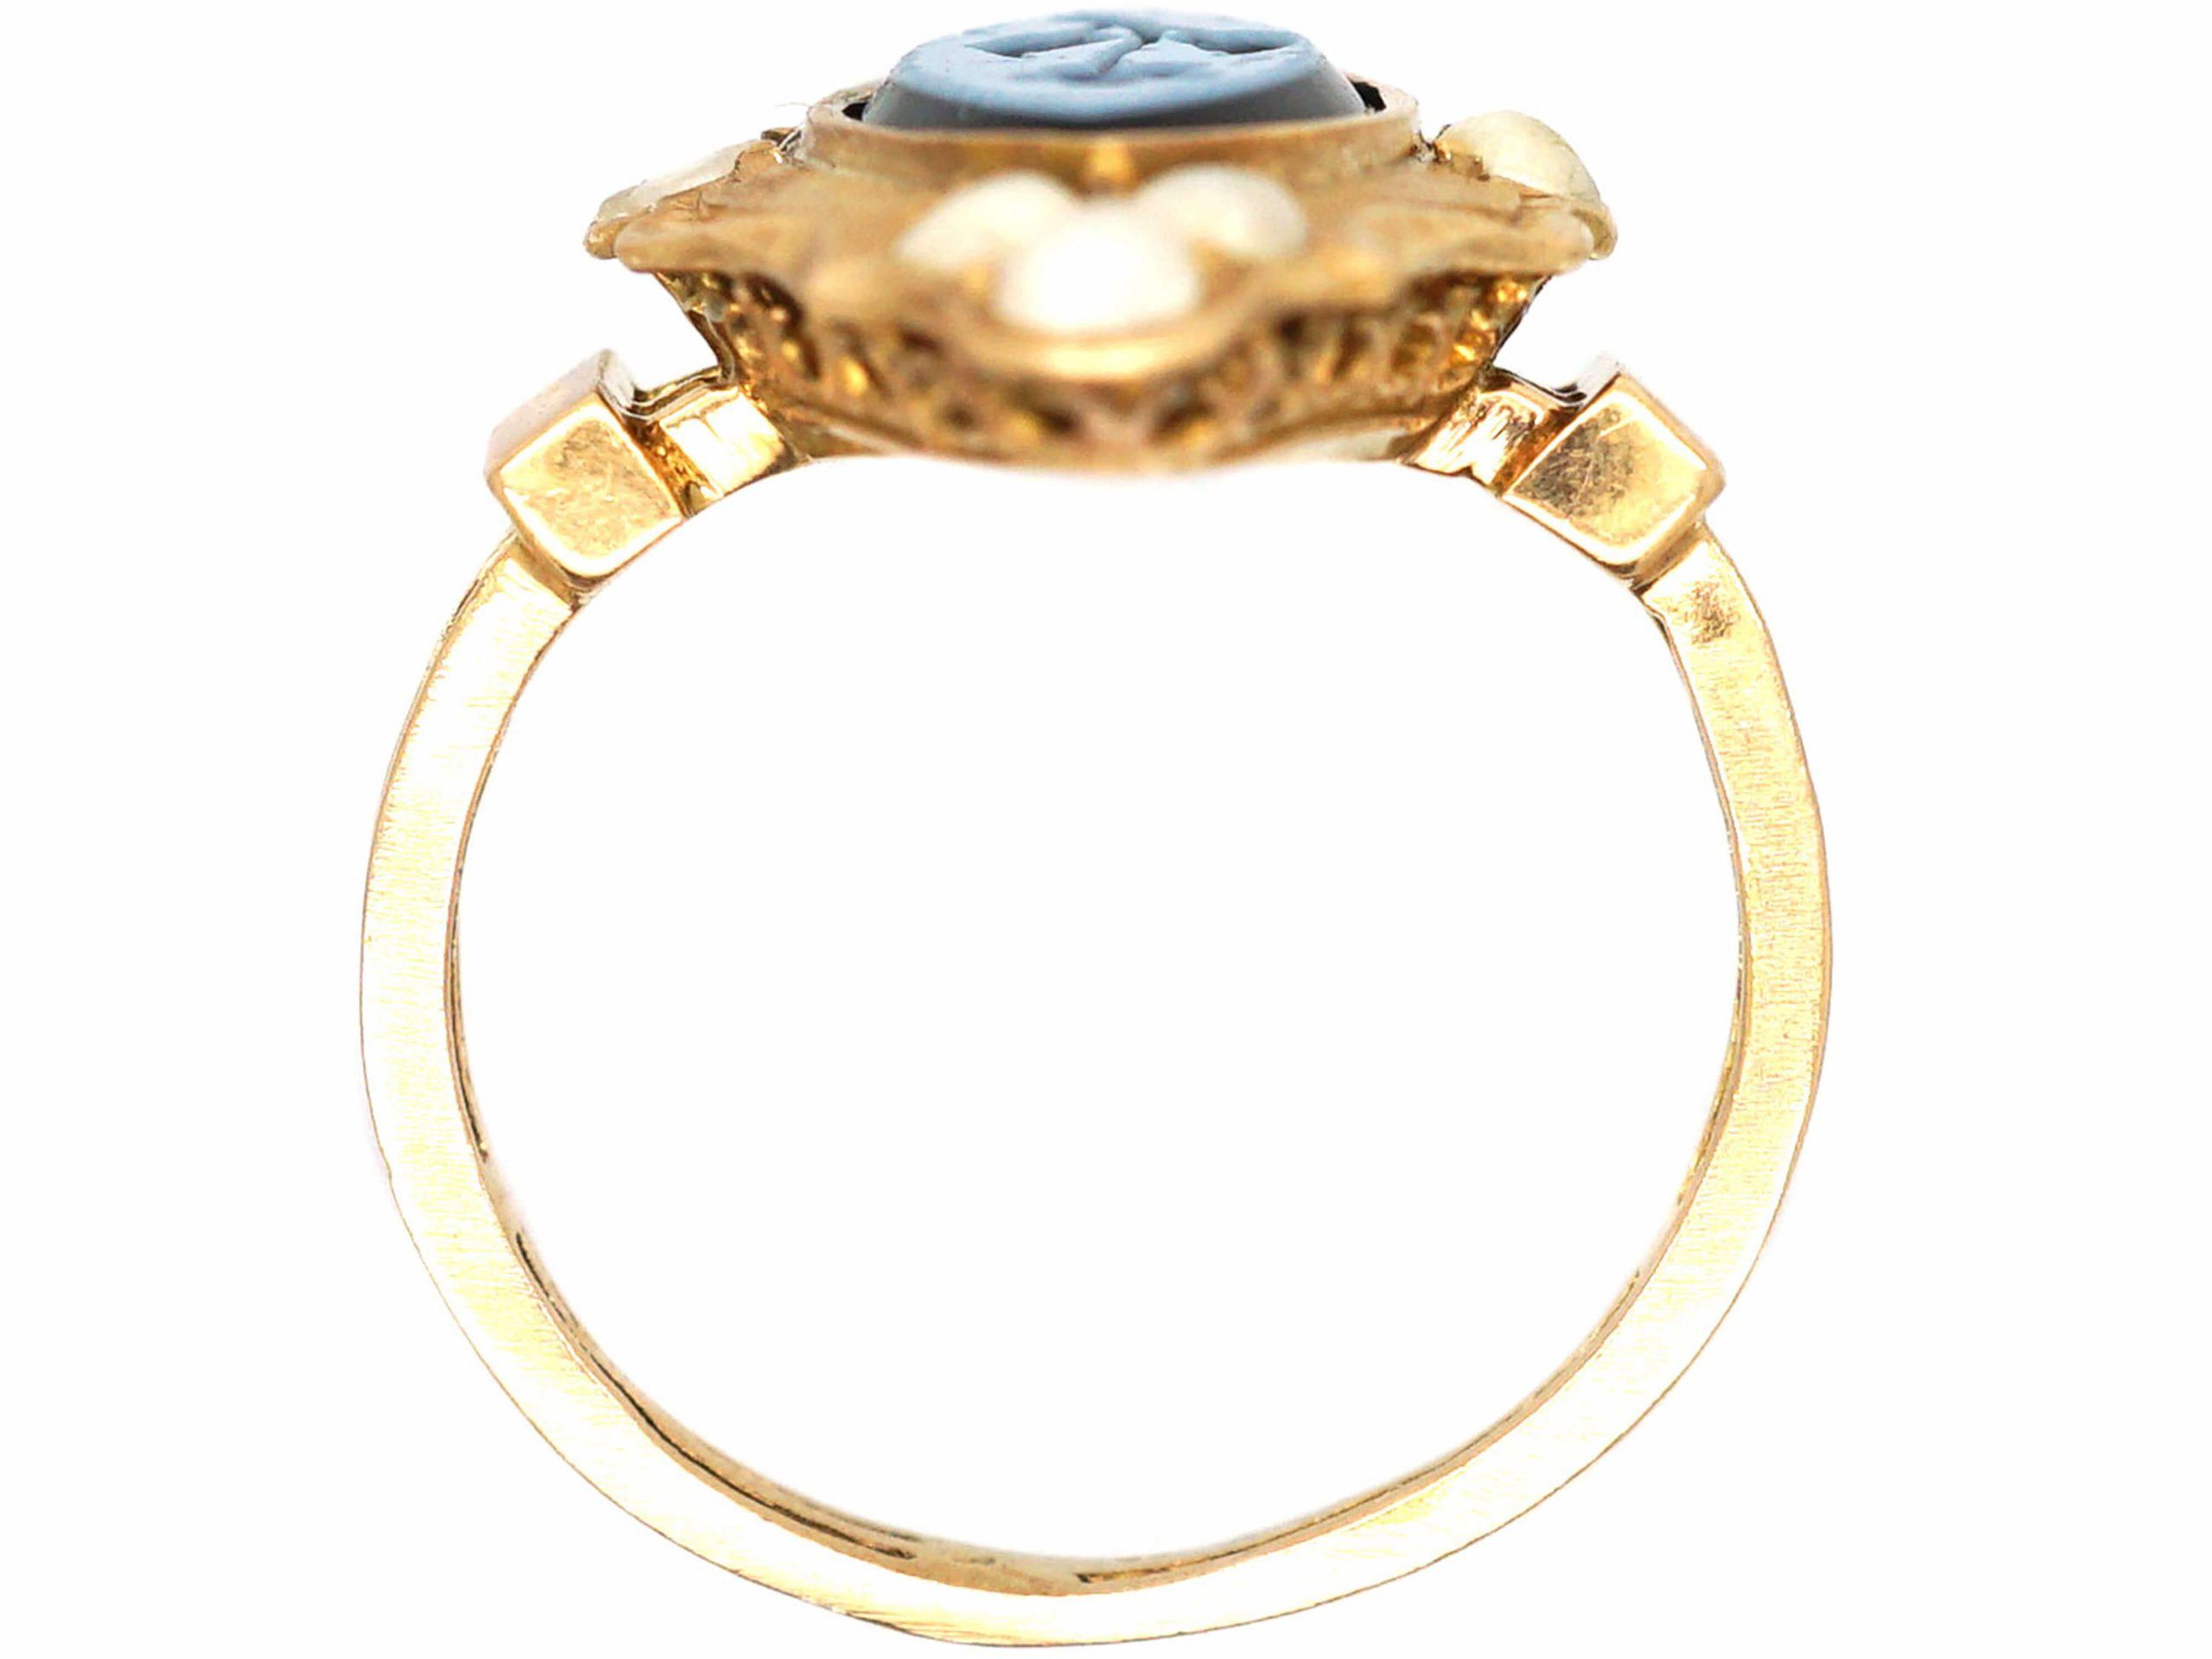 Victorian 18ct Gold Forget Me Not Ring set with Onyx & Natural Split Pearls